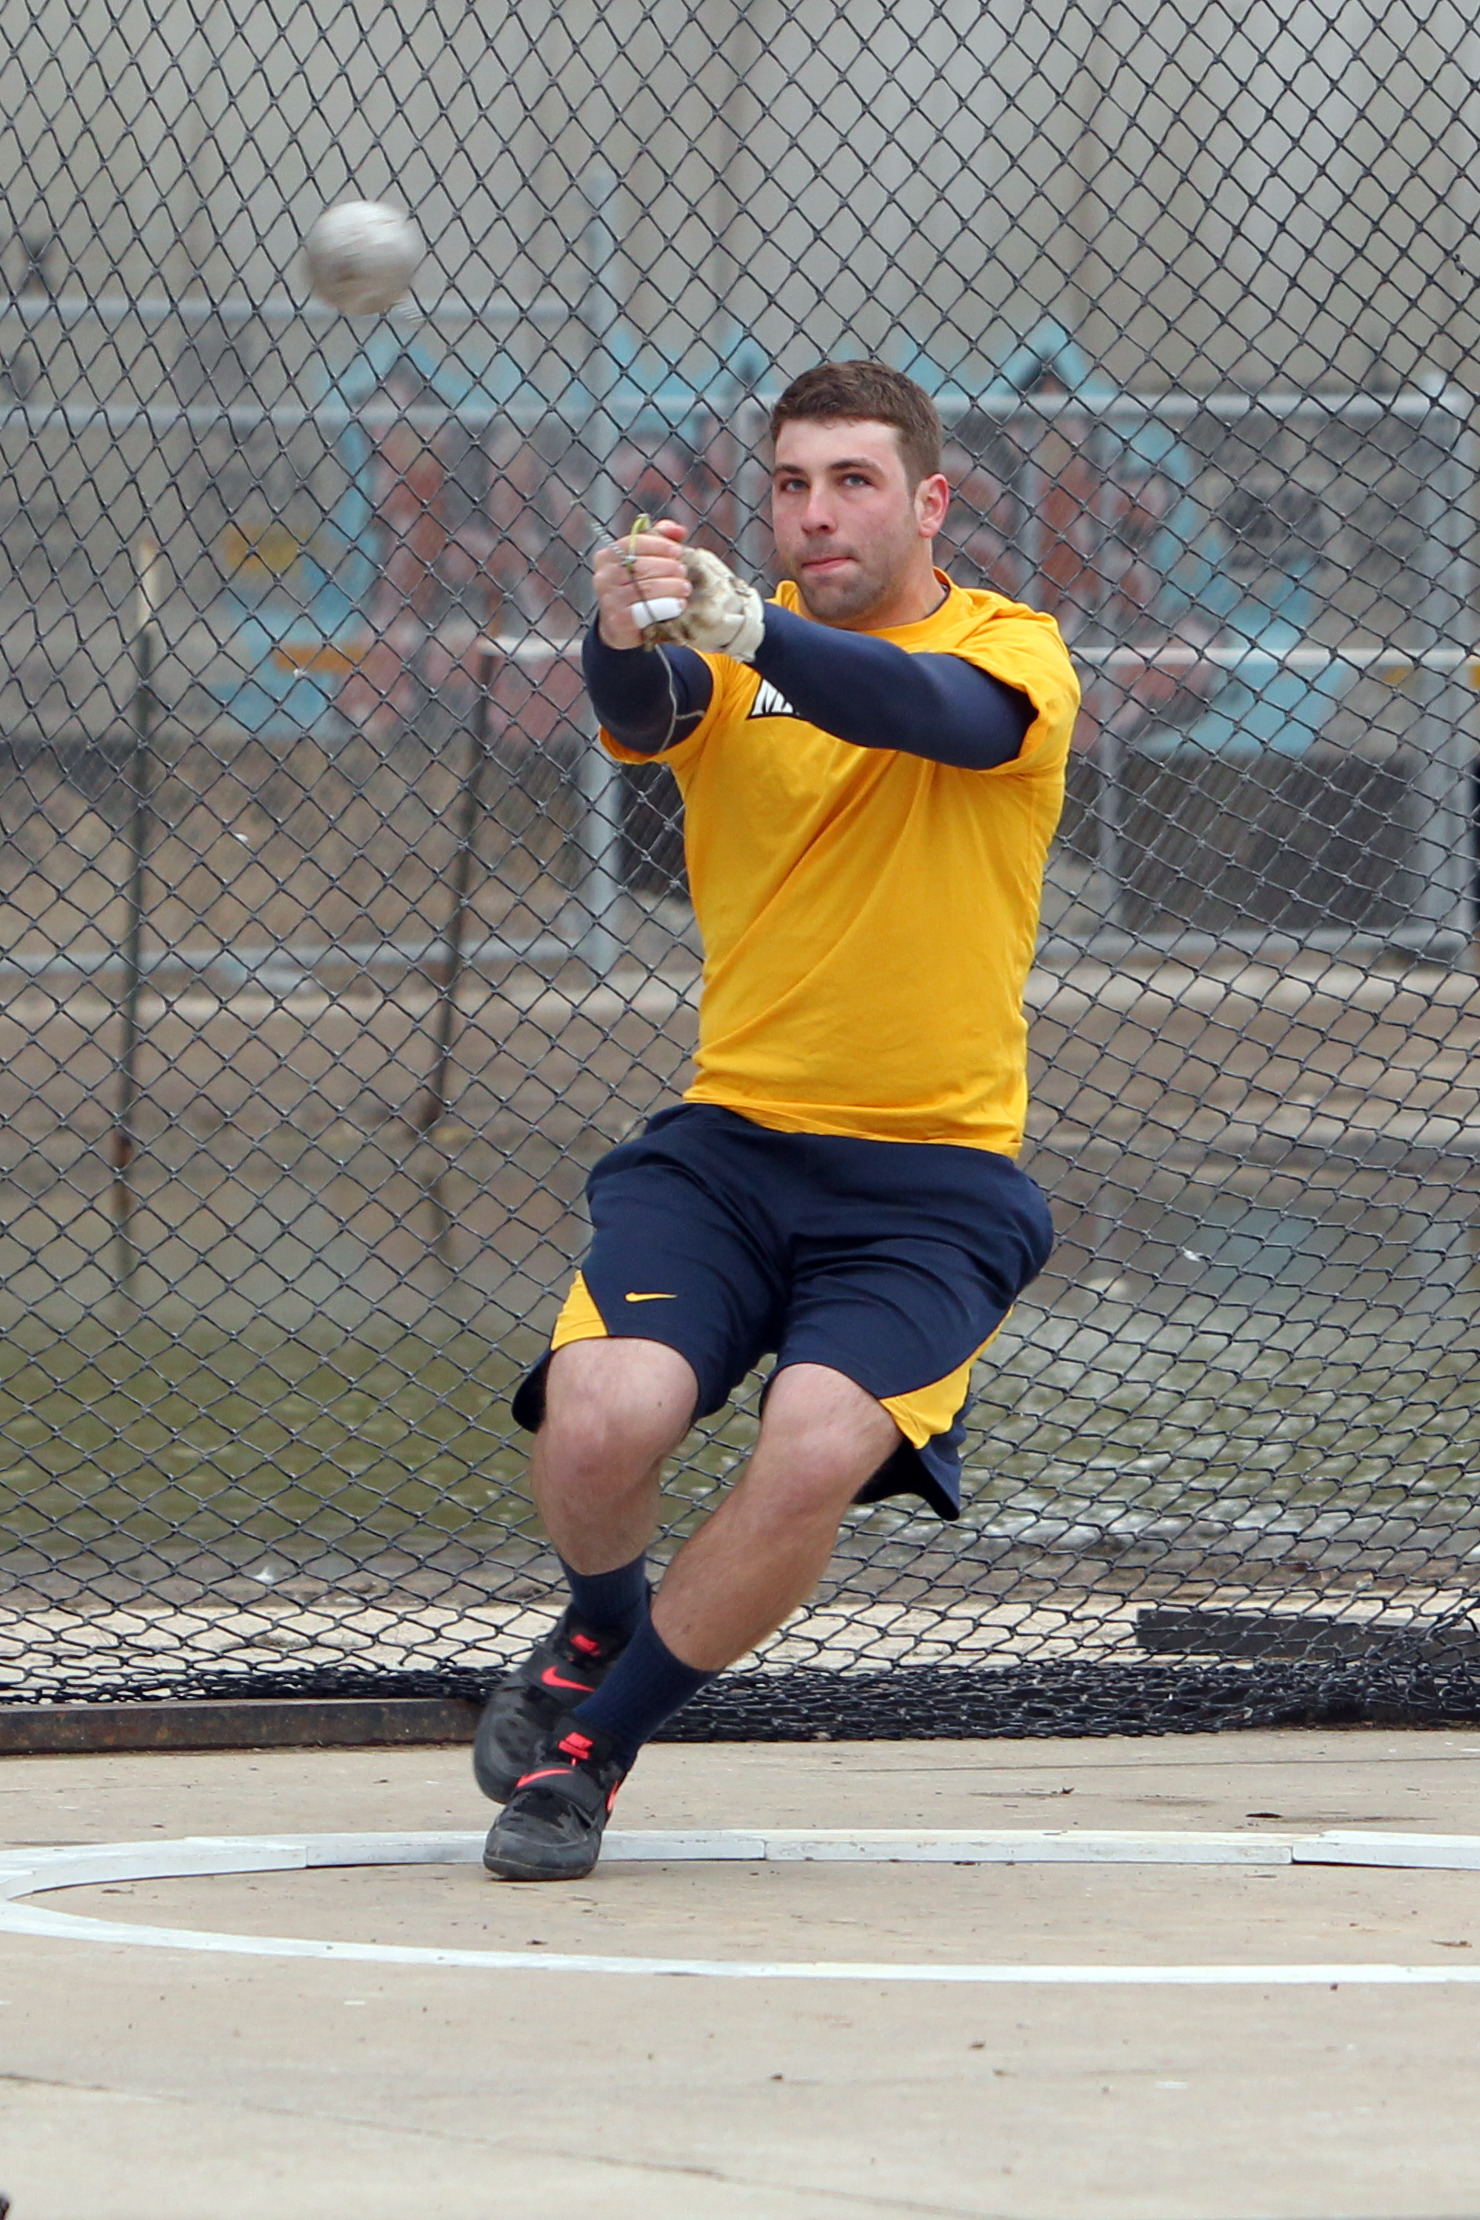 Senior Bret Hardin set a PR in the hammer throw in his final competition for MU.